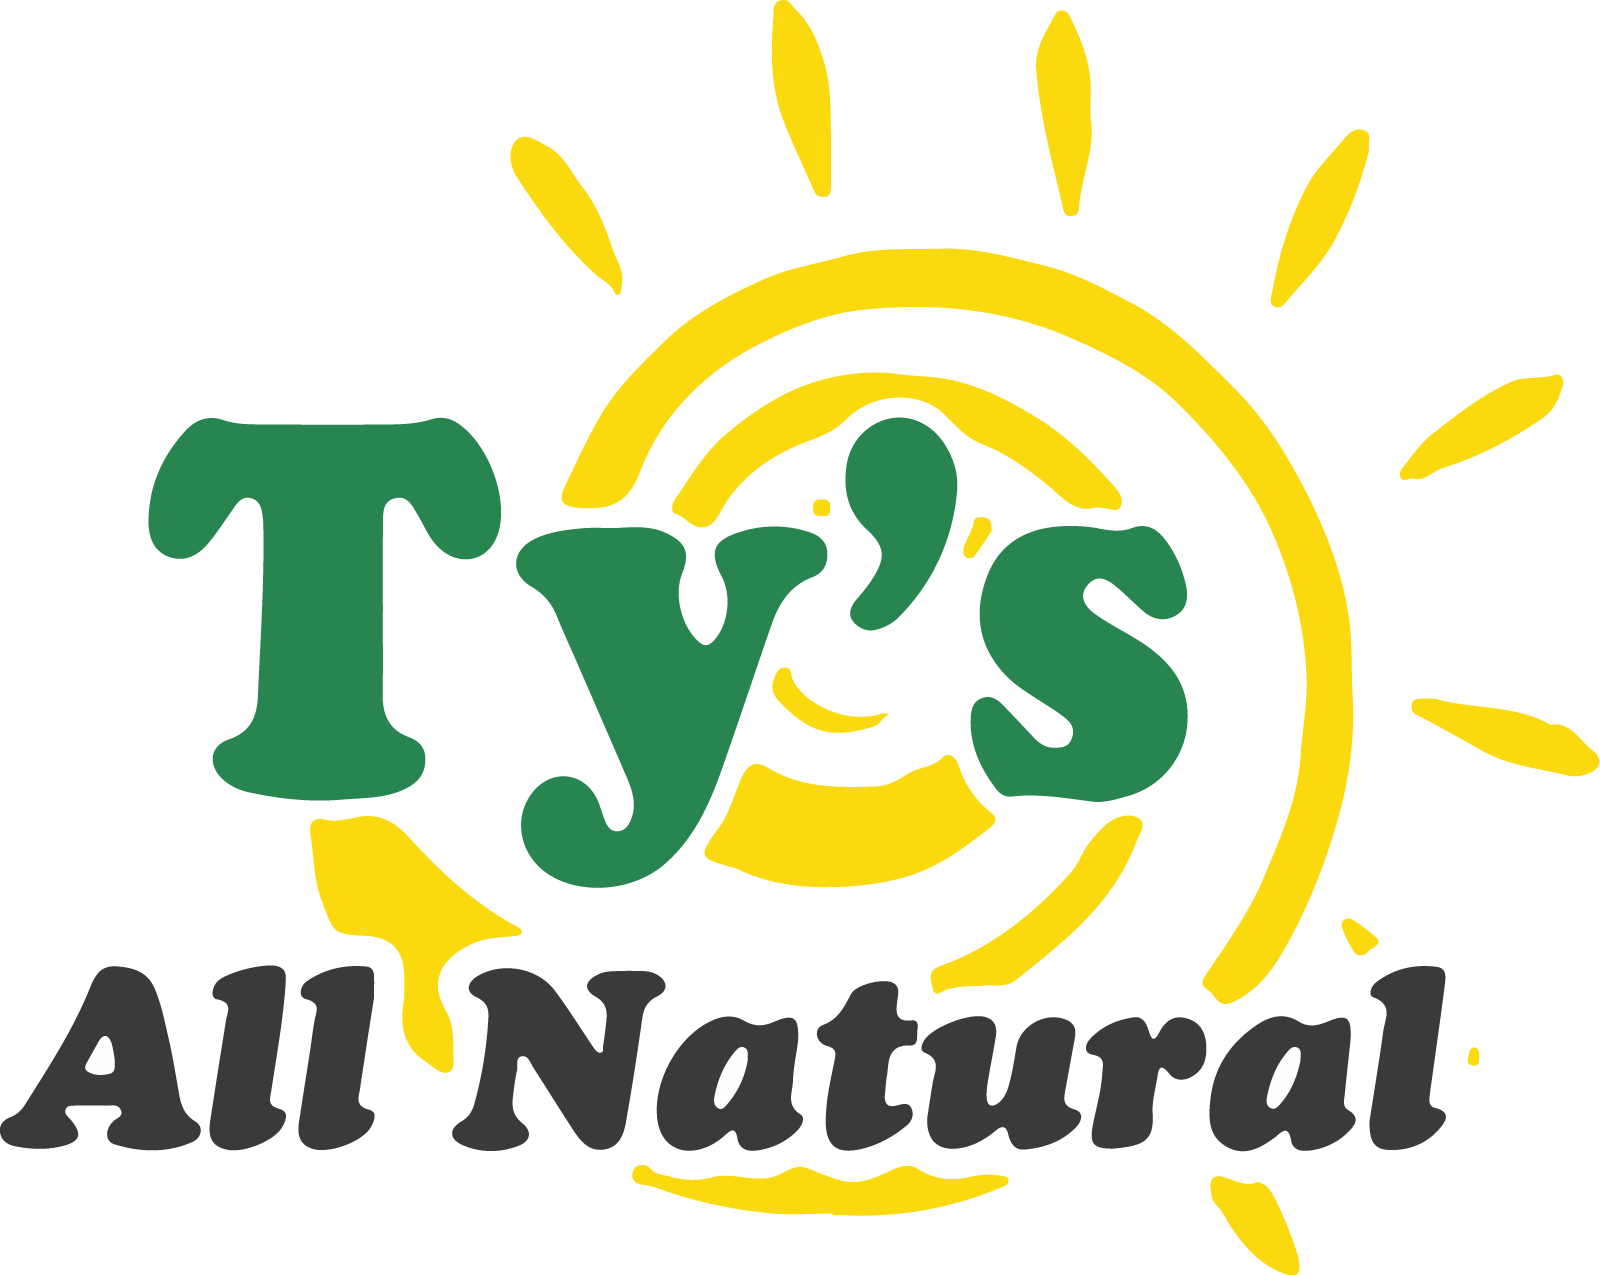 Ty's All Natural Food Truck